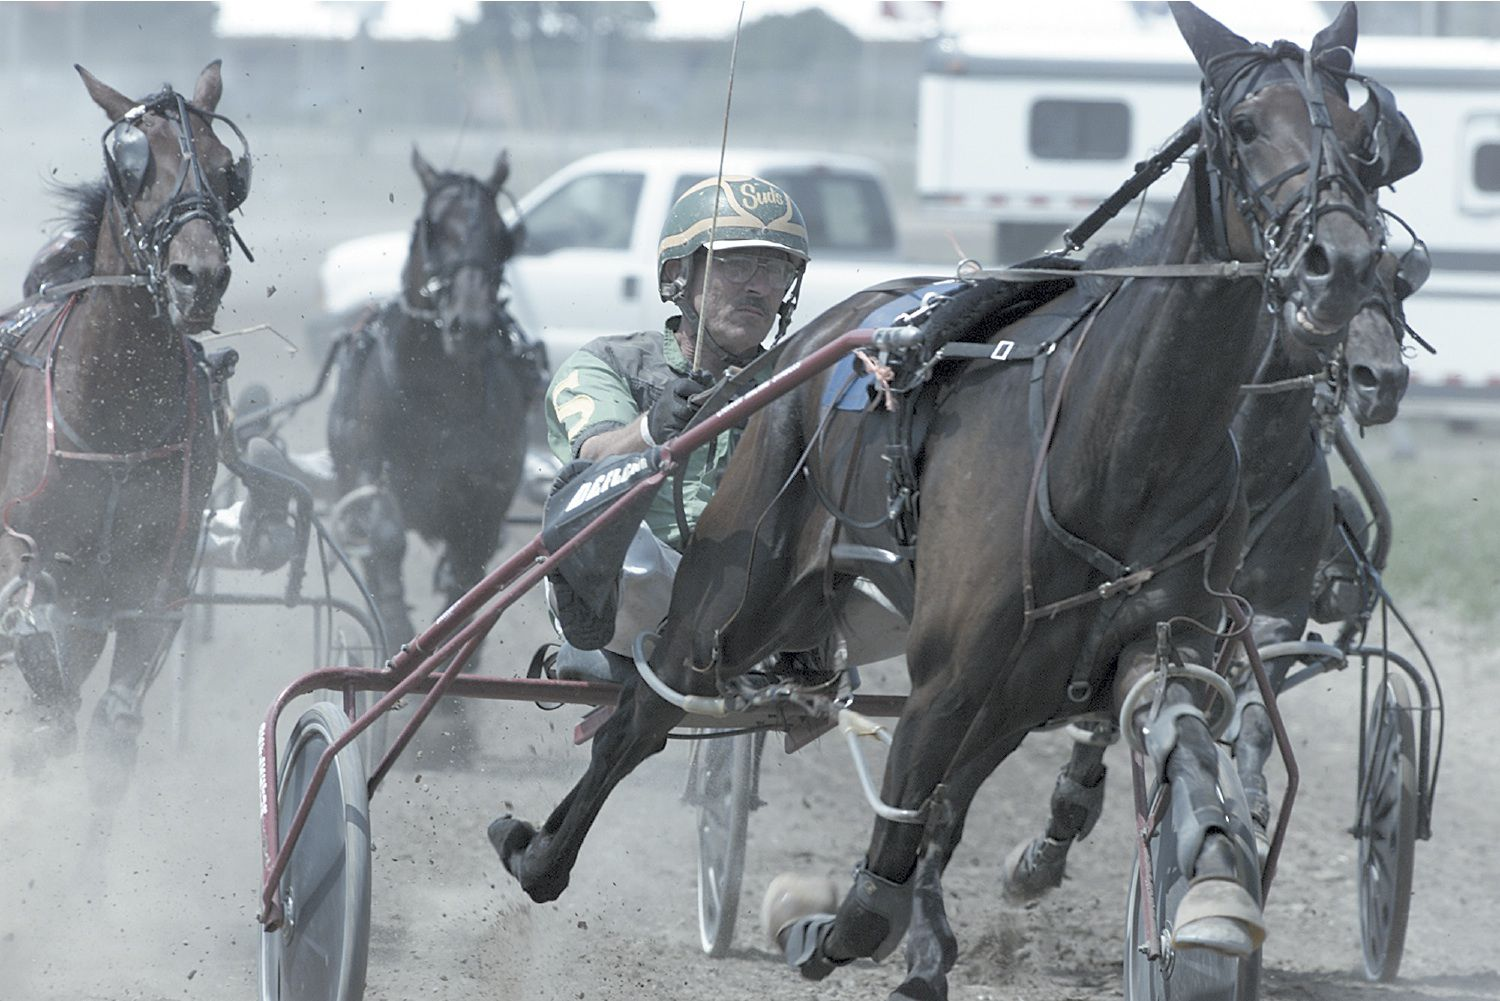 587f970ce6582.image?resize=1200%2C801 harness racing to return to fairgrounds ludington daily news harness racing news at soozxer.org